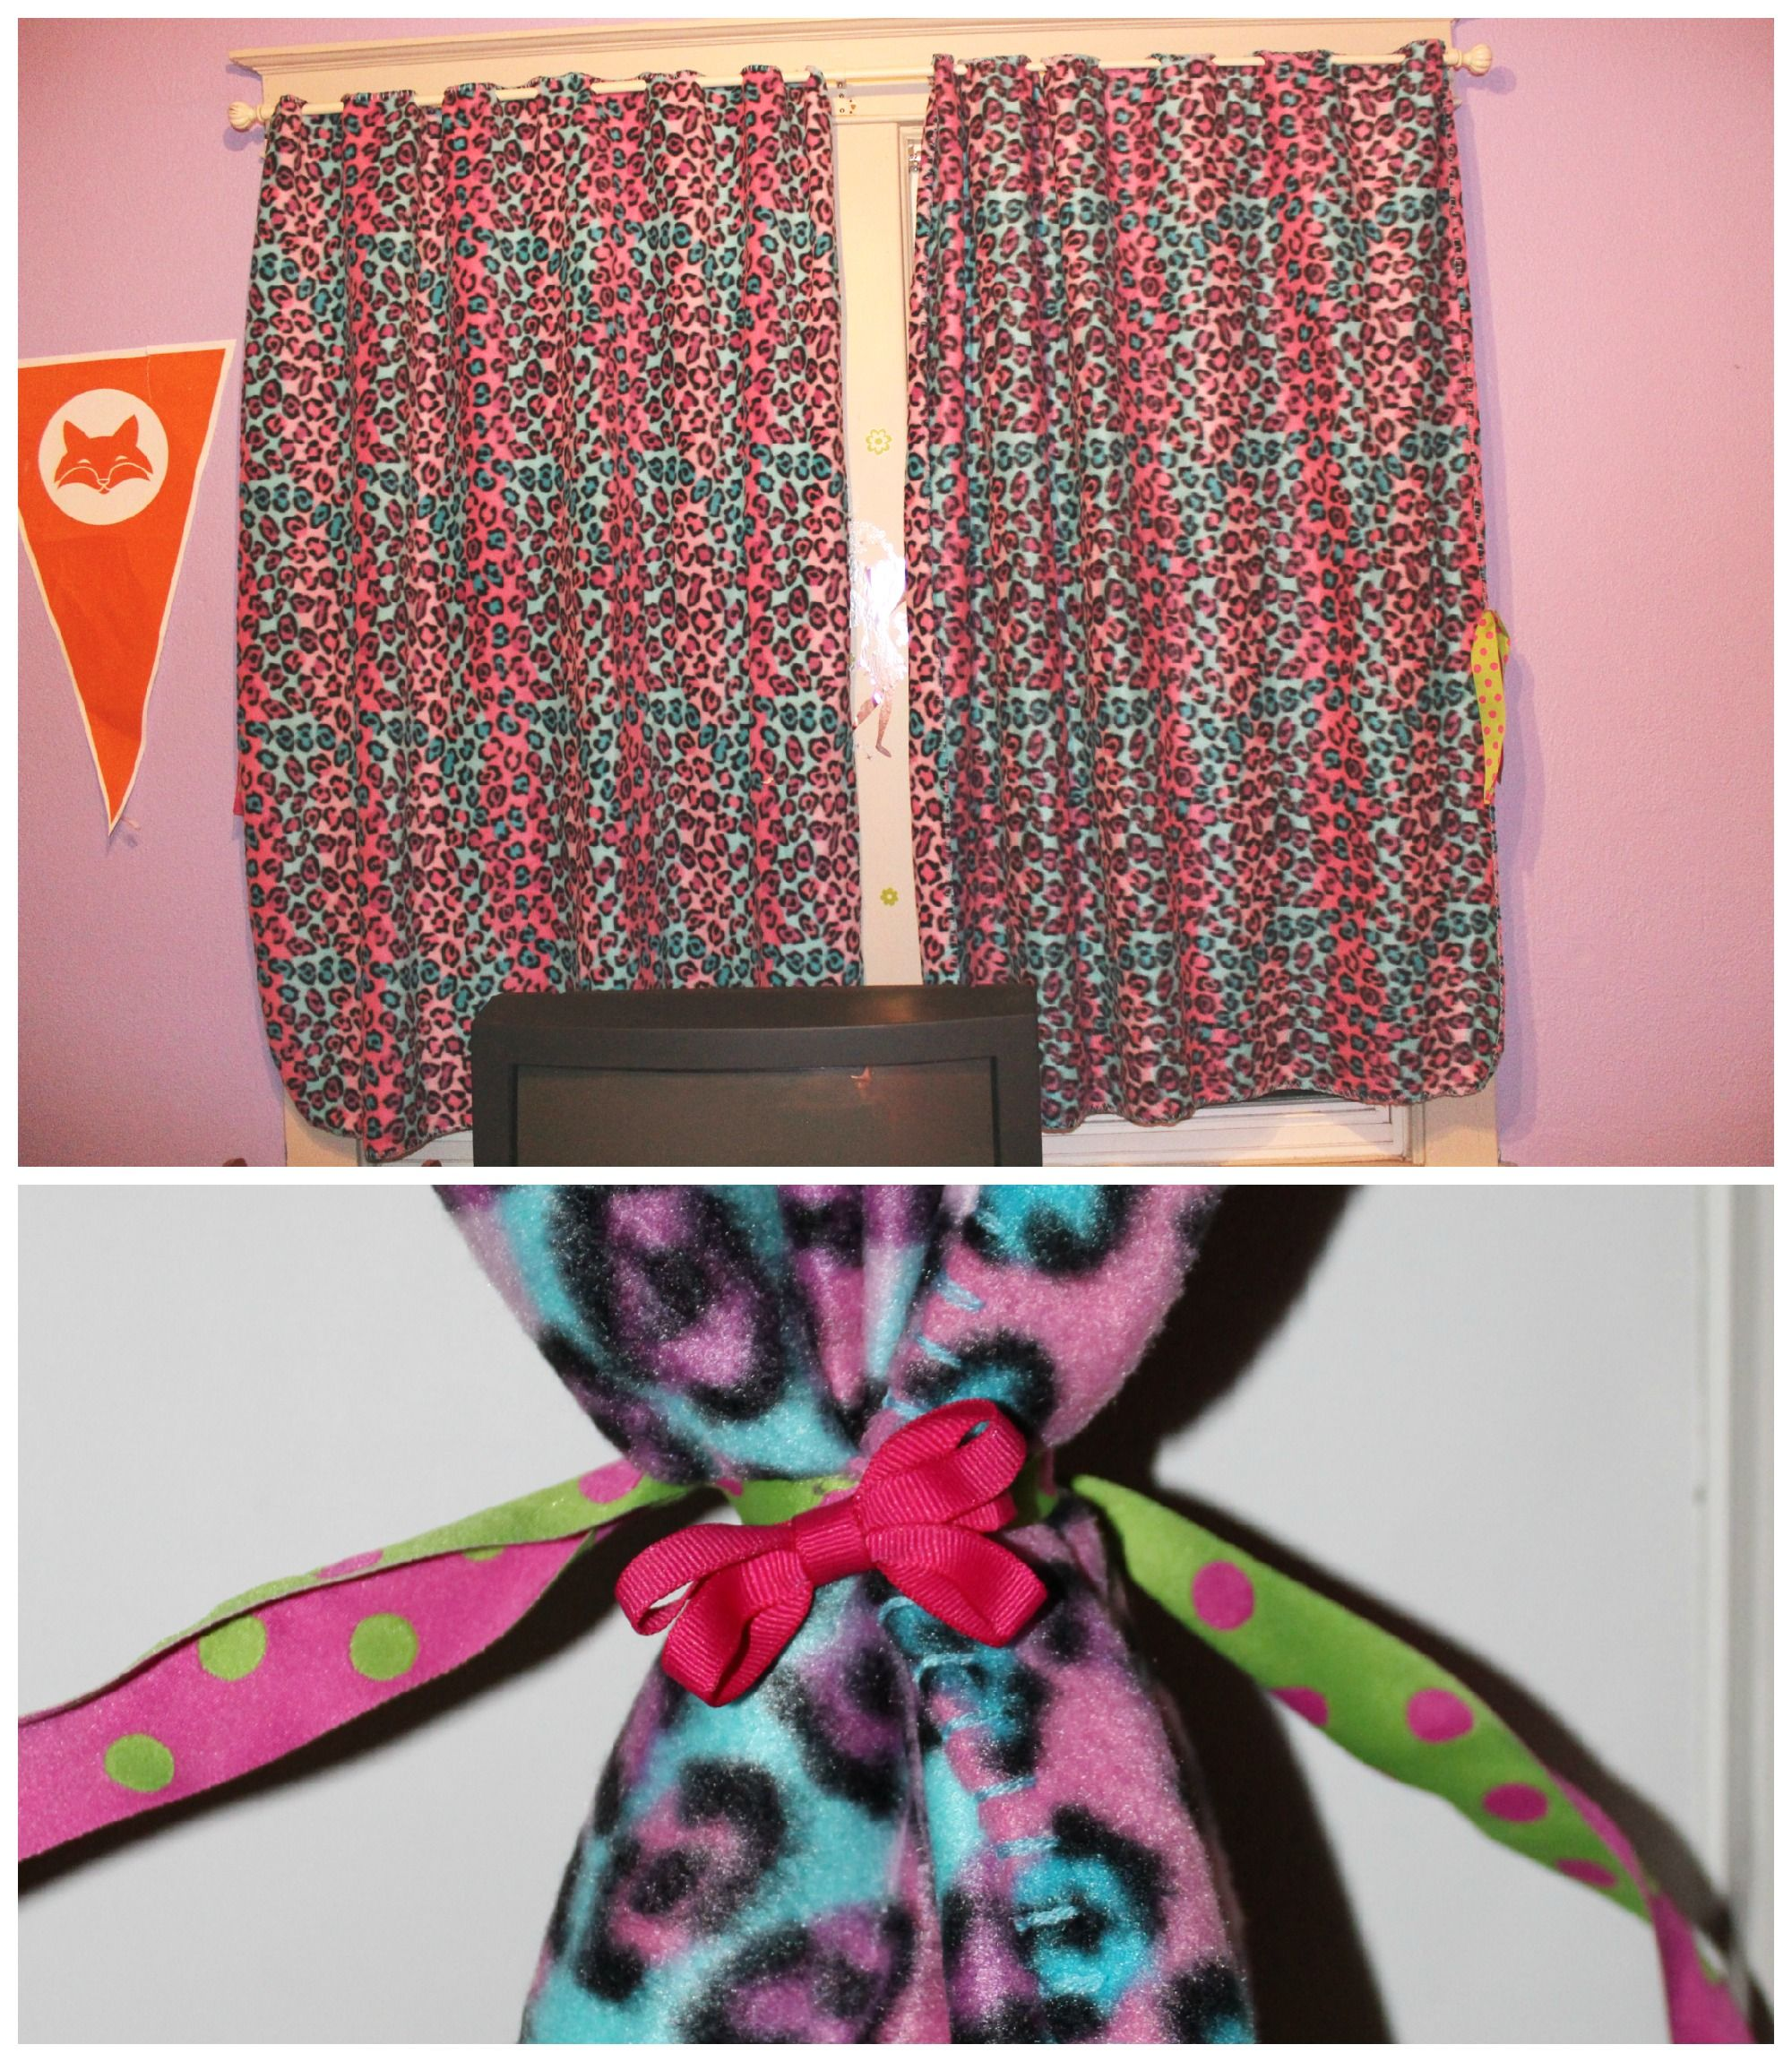 Diy No Sew Curtains Diy No Sew Curtains 2 Fleece Blankets On Sale Cut Slits In The